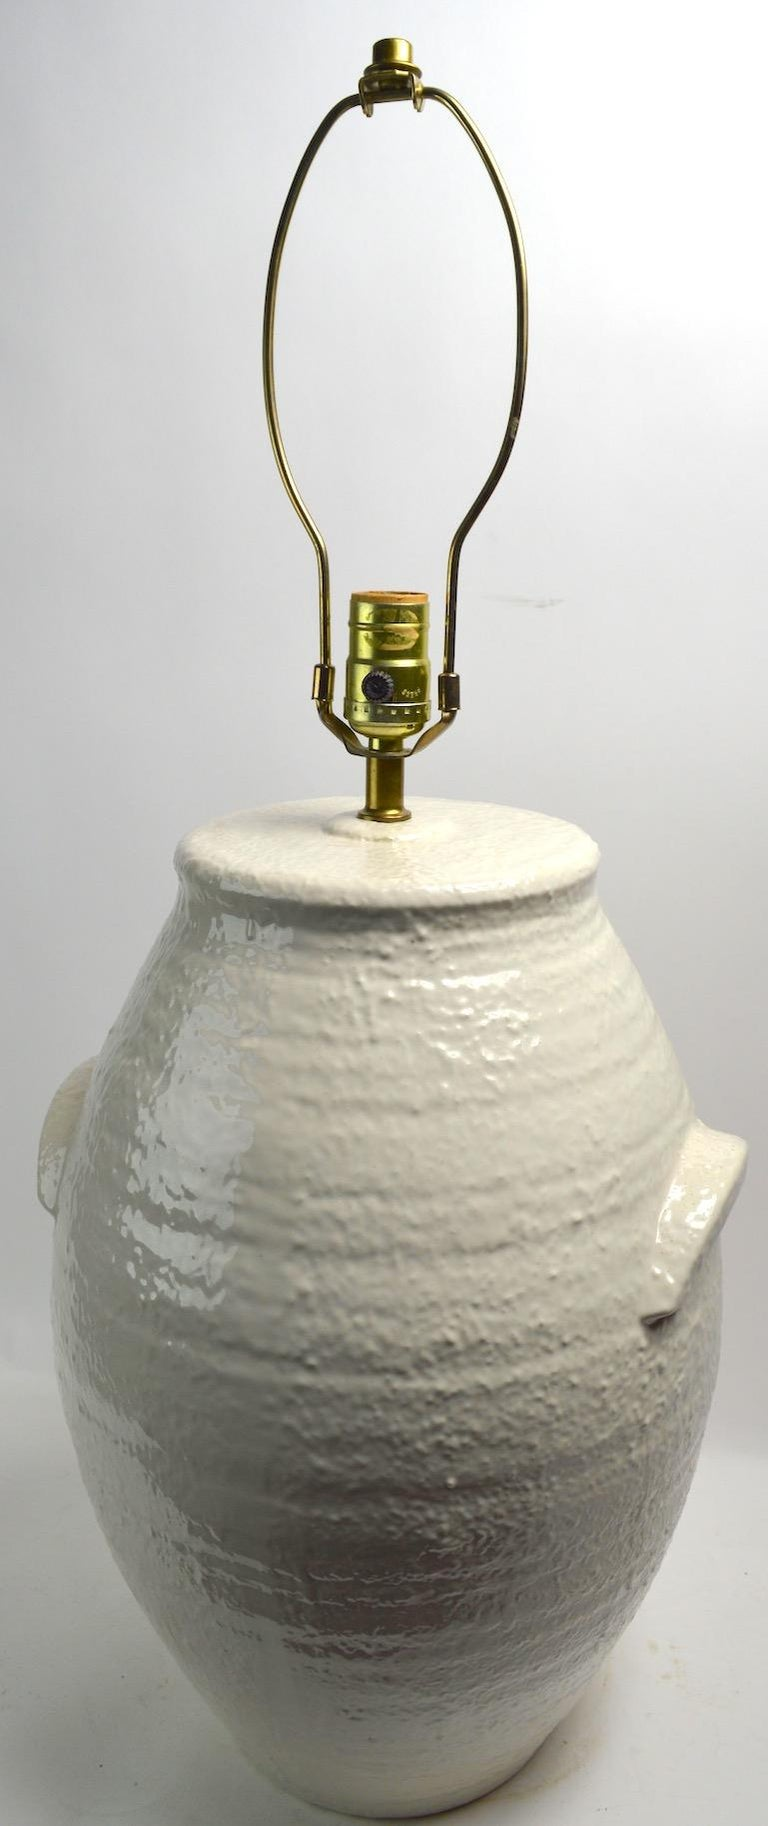 Pair of decorative off white ceramic lamps in the form of antique handled stoneware vessels. Textured high glaze surface and large scale make these a statement pair of lamps, circa 1970s-1980s. H to top of ceramic body 17 inches.